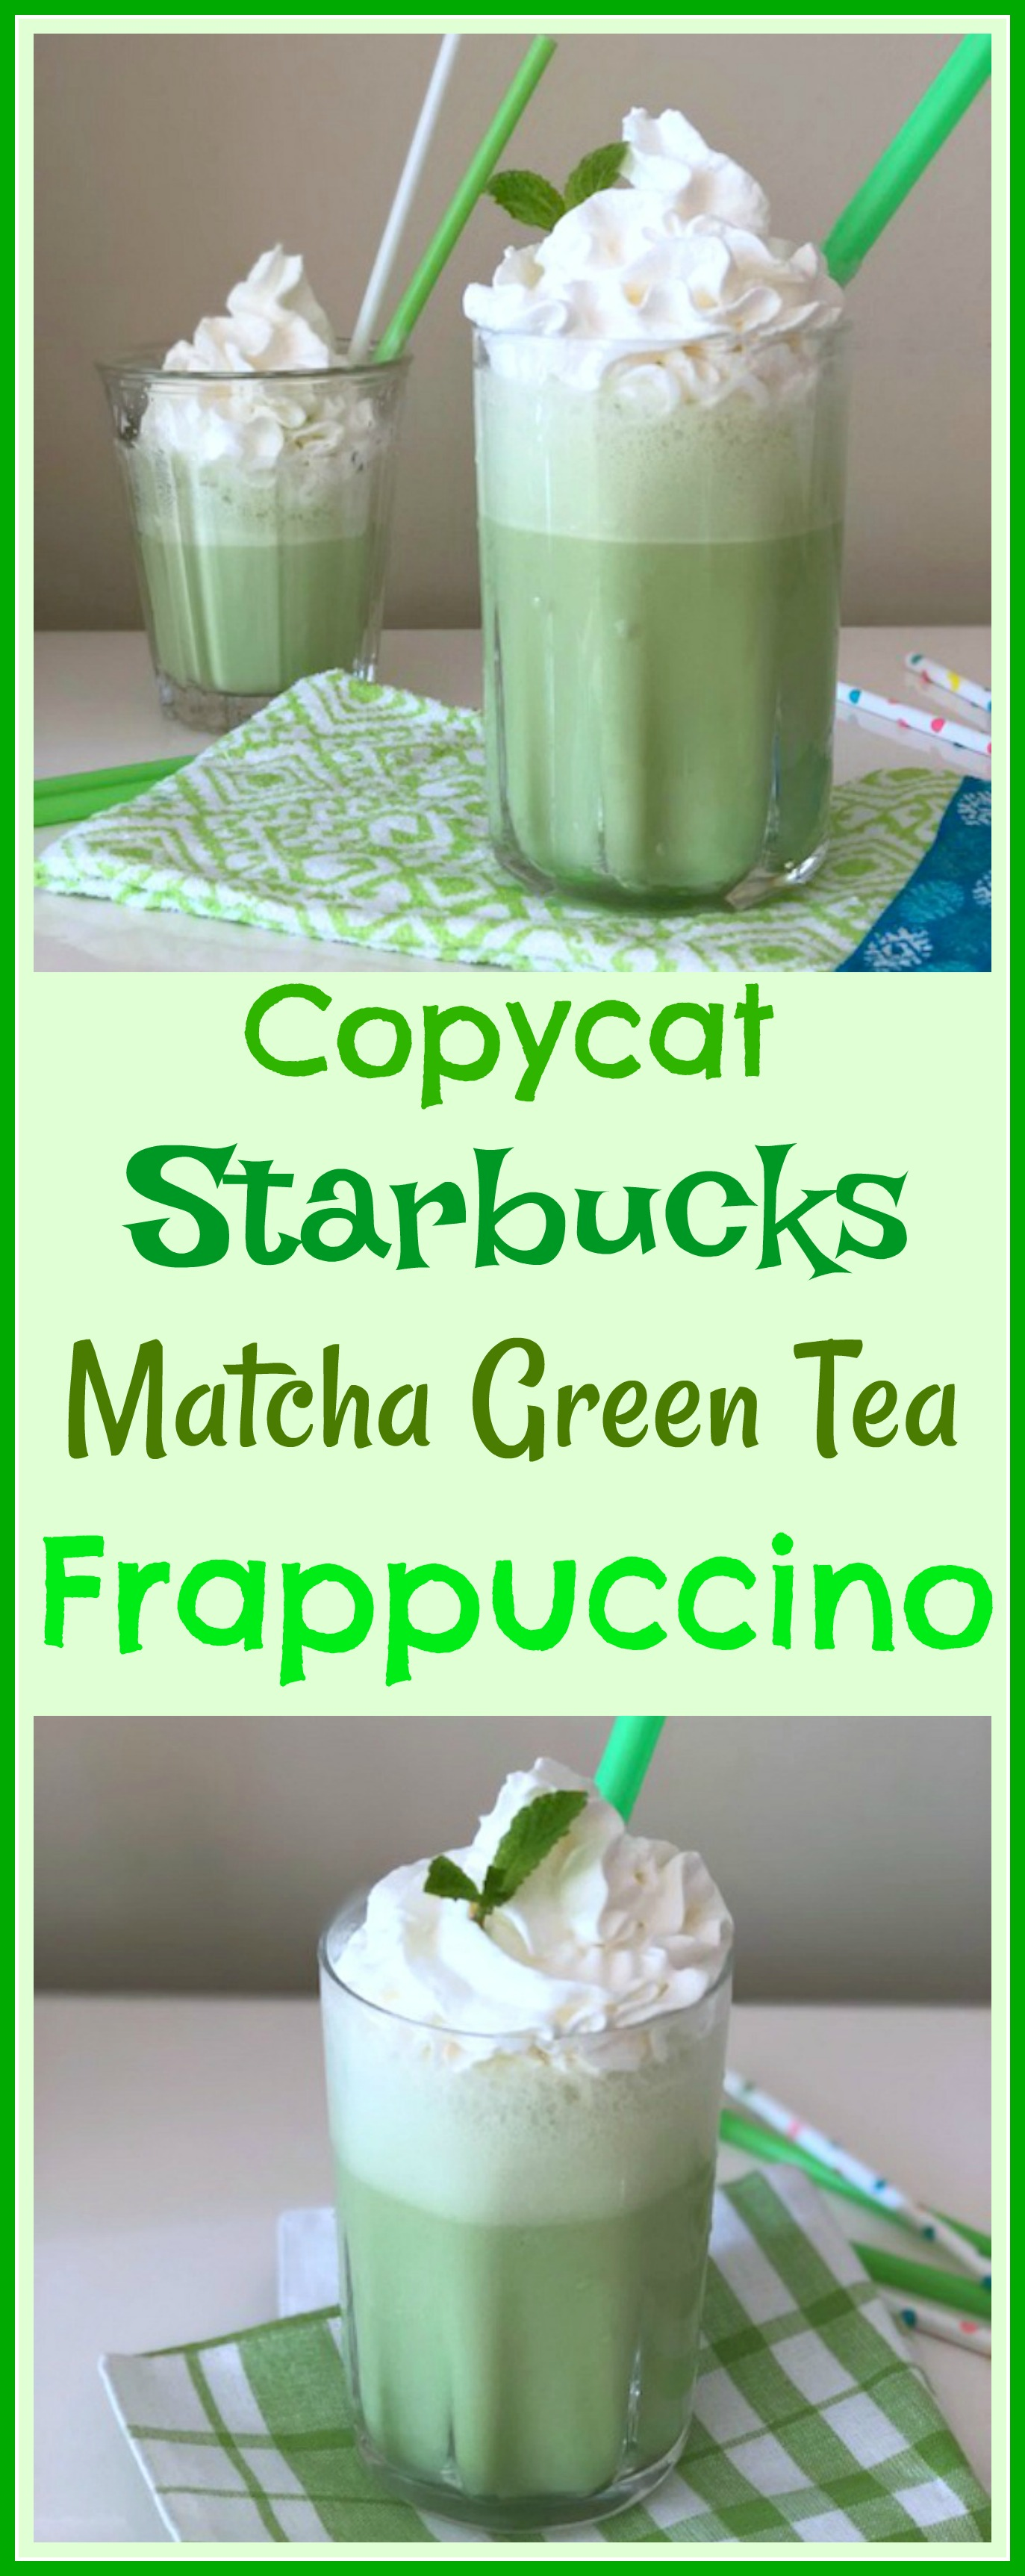 This Starbucks green tea frappuccino recipe is creamy and refreshingly delicious. And even better, this easy matcha frappe tastes pretty close to the original Starbucks Matcha Frappuccino! Make a matcha green tea frappe for yourself and enjoy! via @skinnydesserts